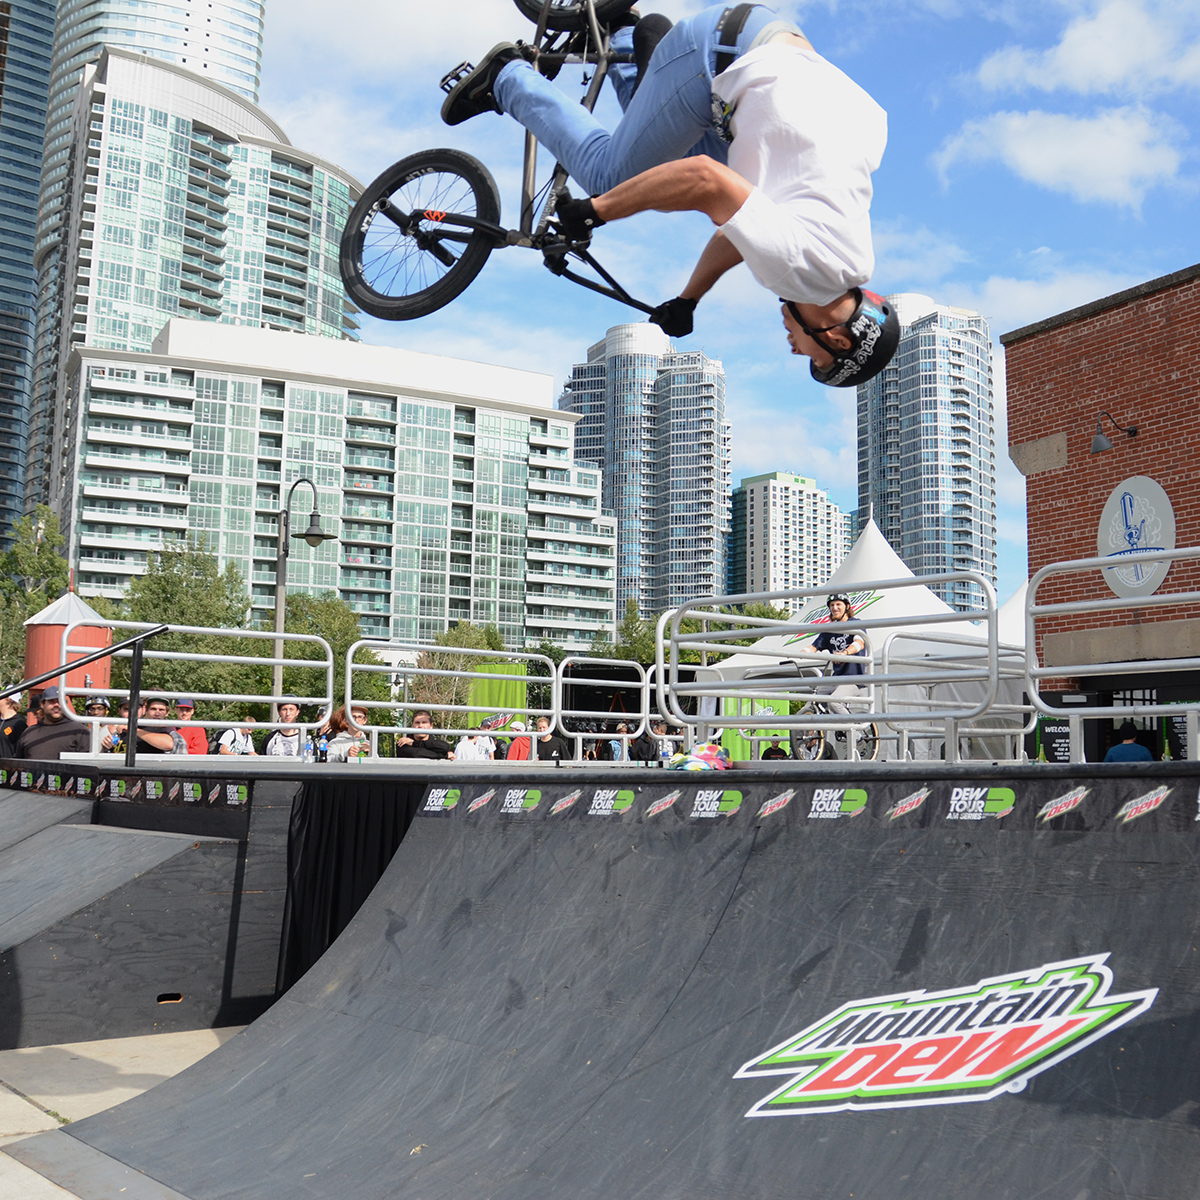 Steven Moxley winner at Dew Tour Am Series in Toronto